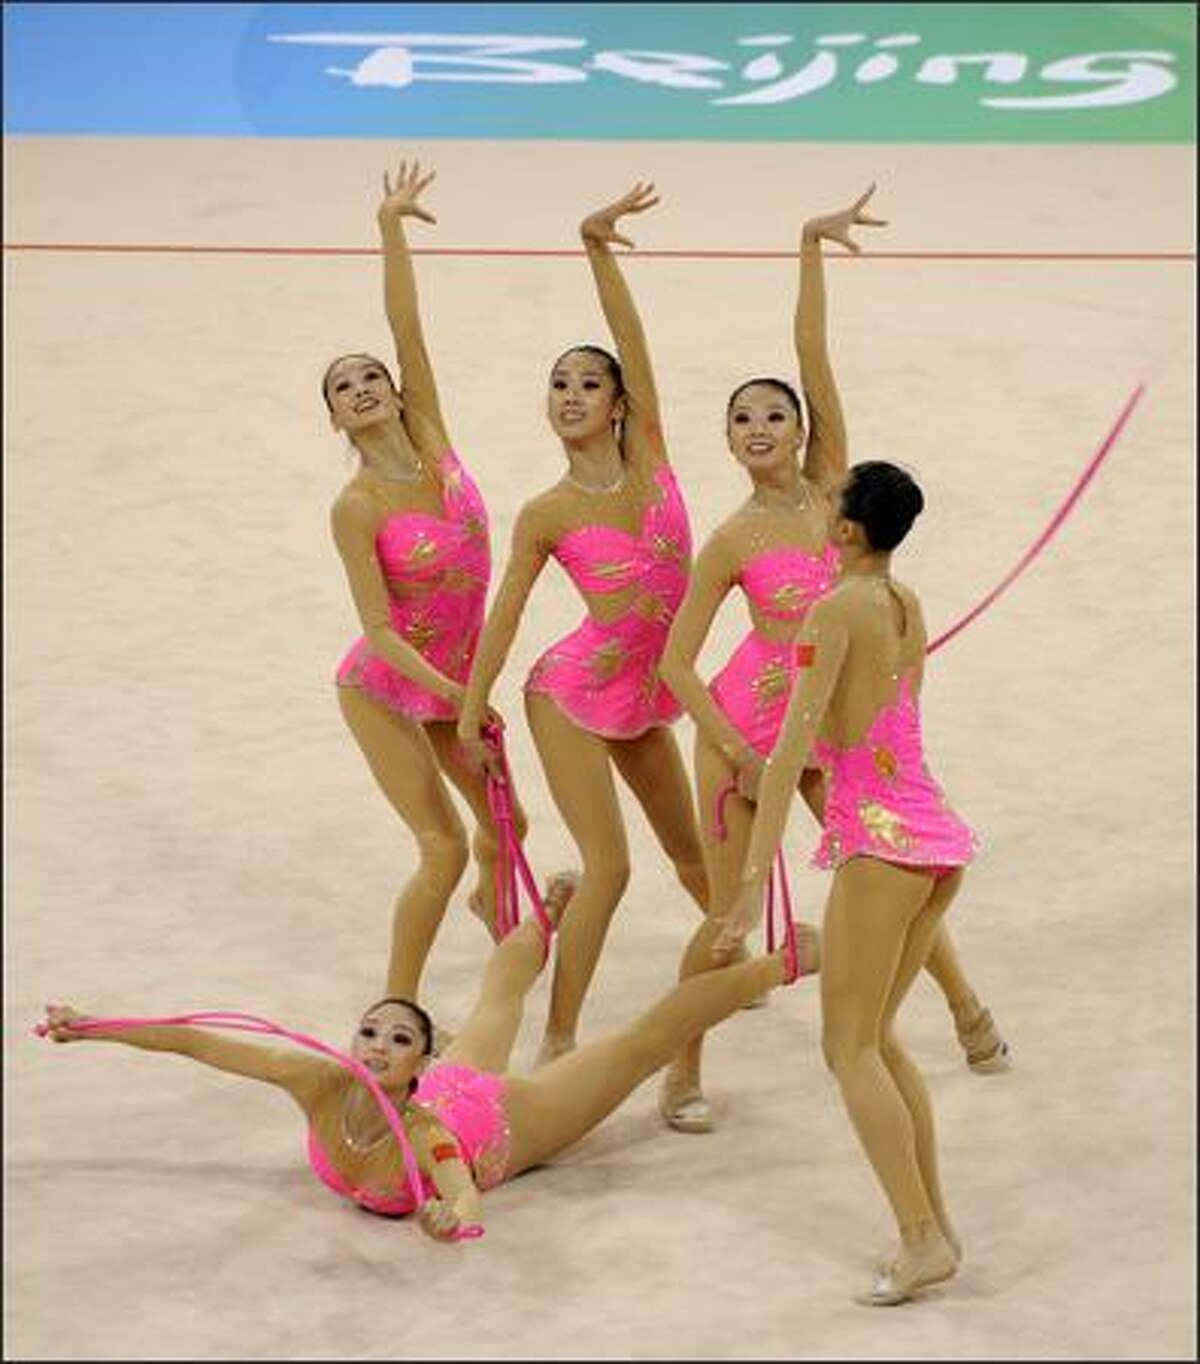 The team of China competes in the group all-around qualification of the rhythmic gymnastics at the Beijing 2008 Olympic Games in Beijing on August 21, 2008.